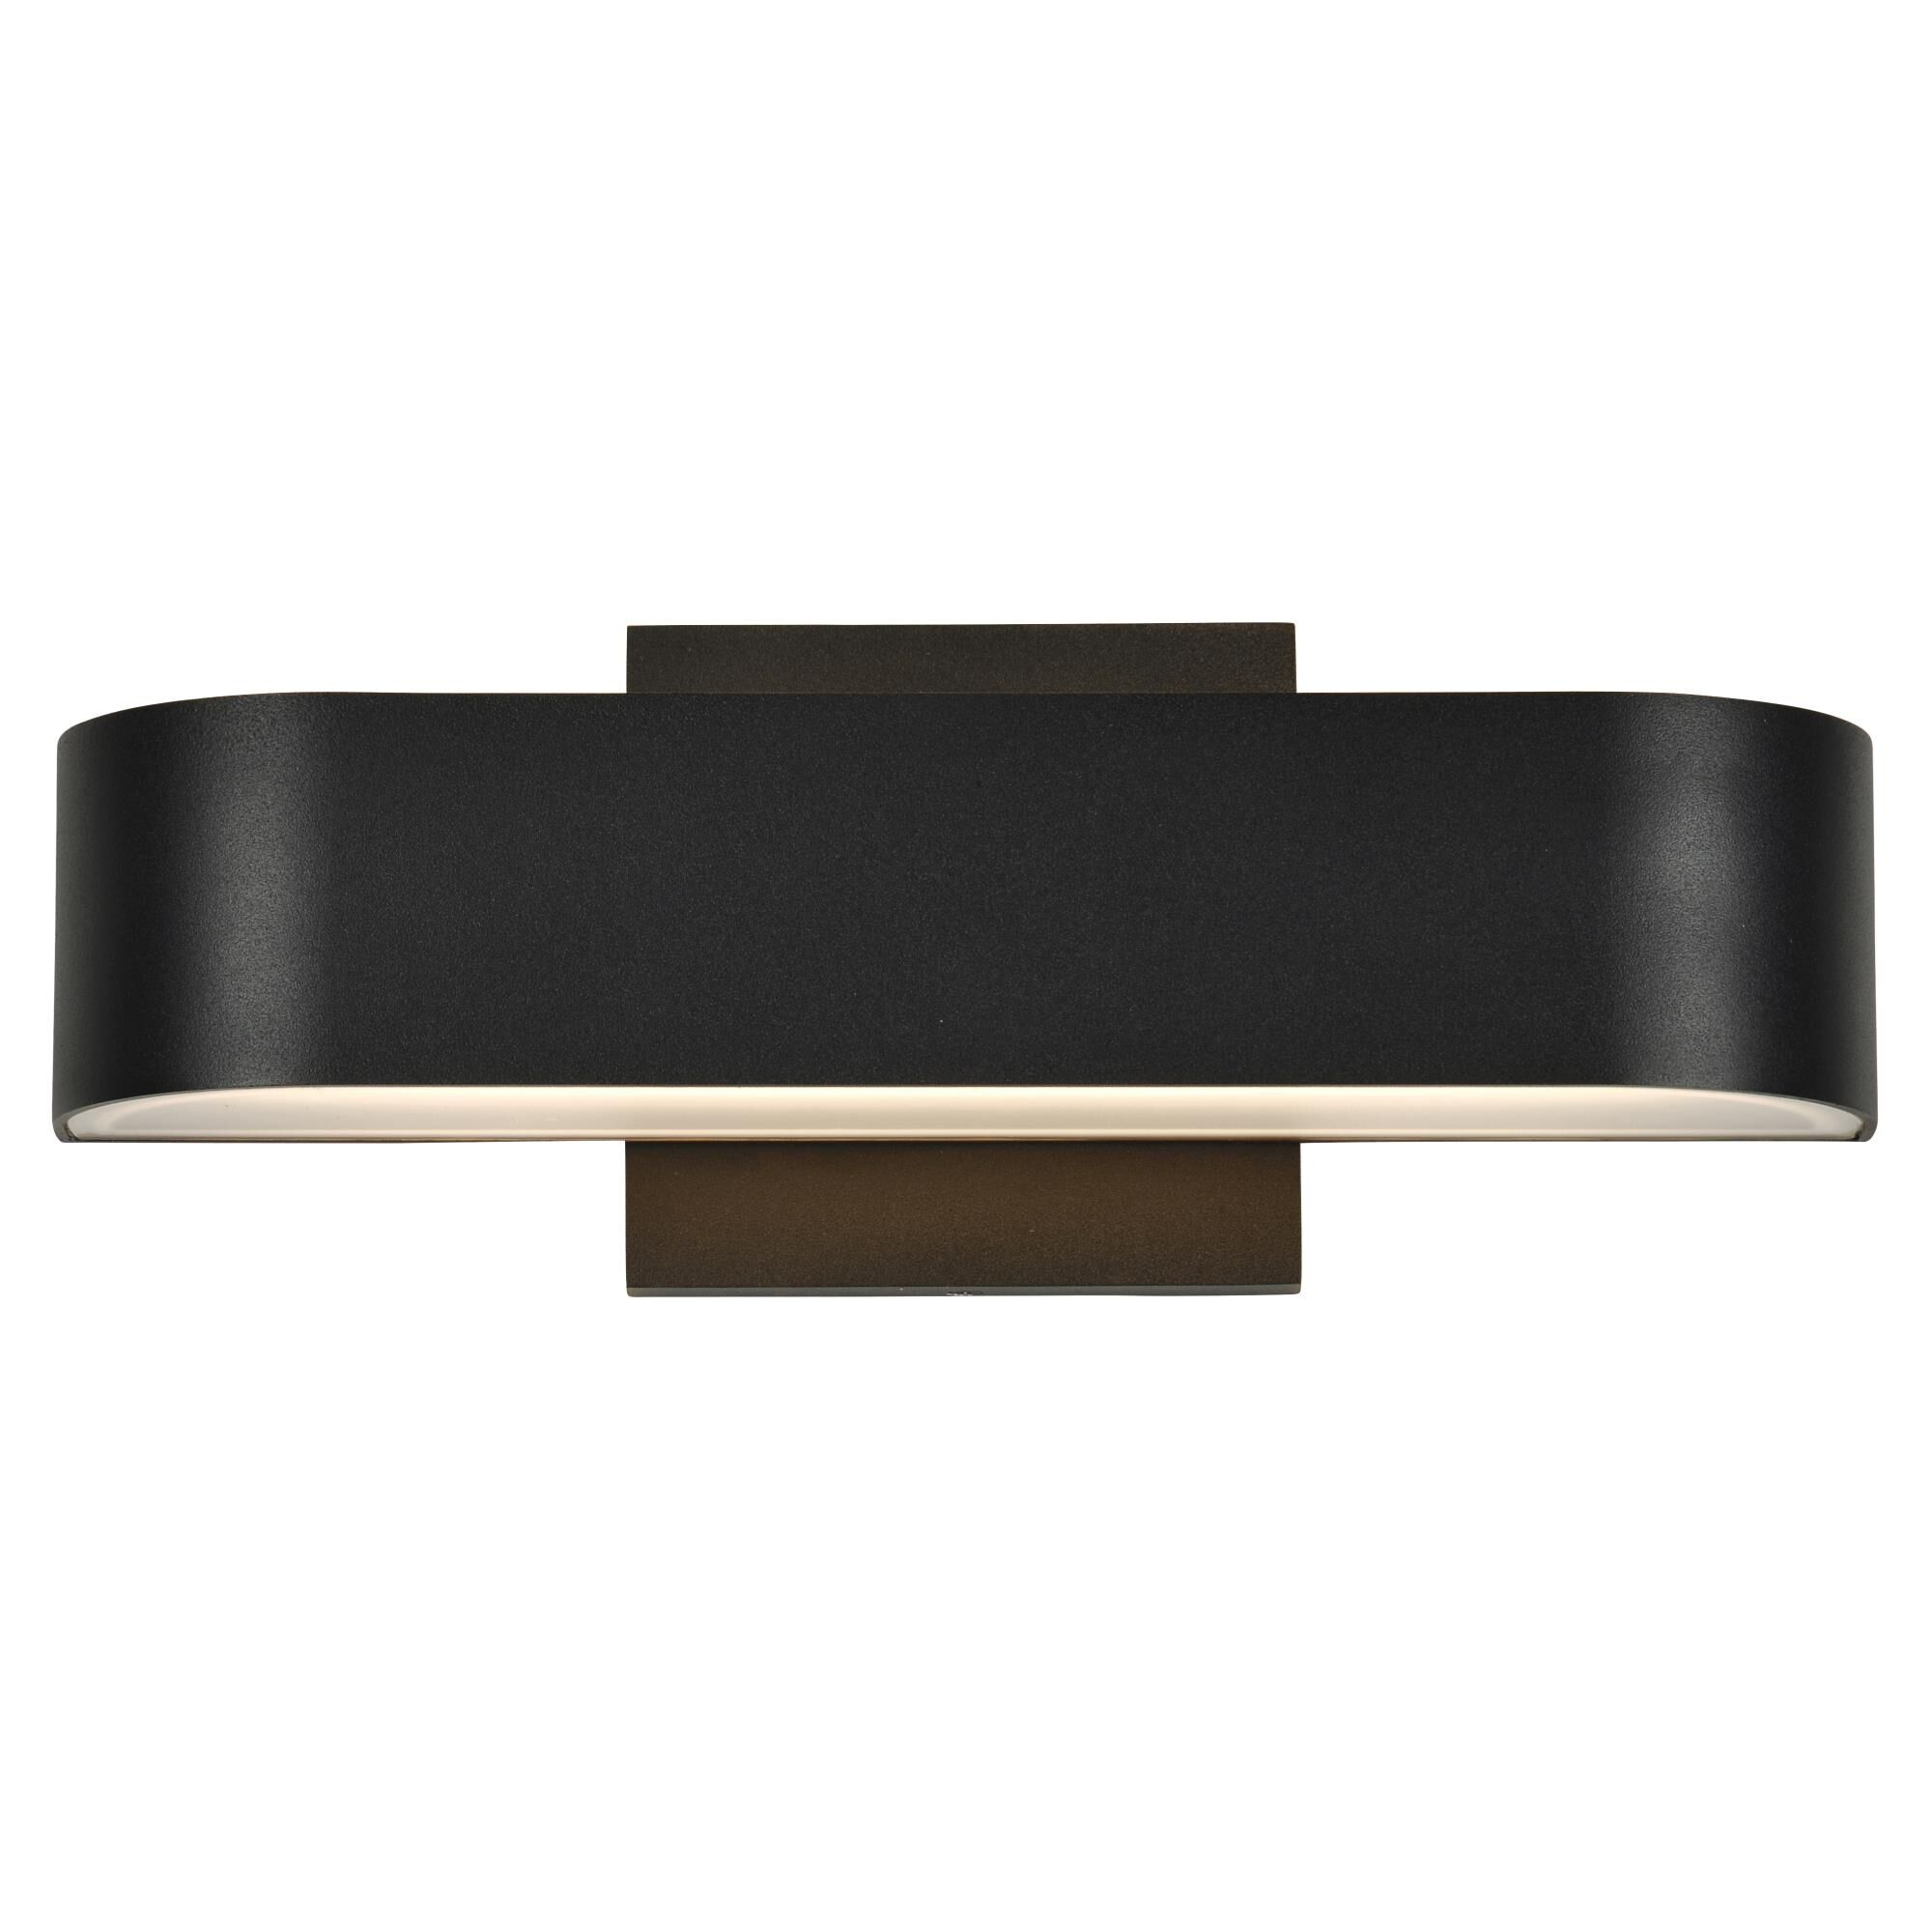 Access Lighting Montreal 2 Inch Tall 2 Light LED Outdoor Wall Light Montreal 20046LEDDMG BLFST Modern Contemporary